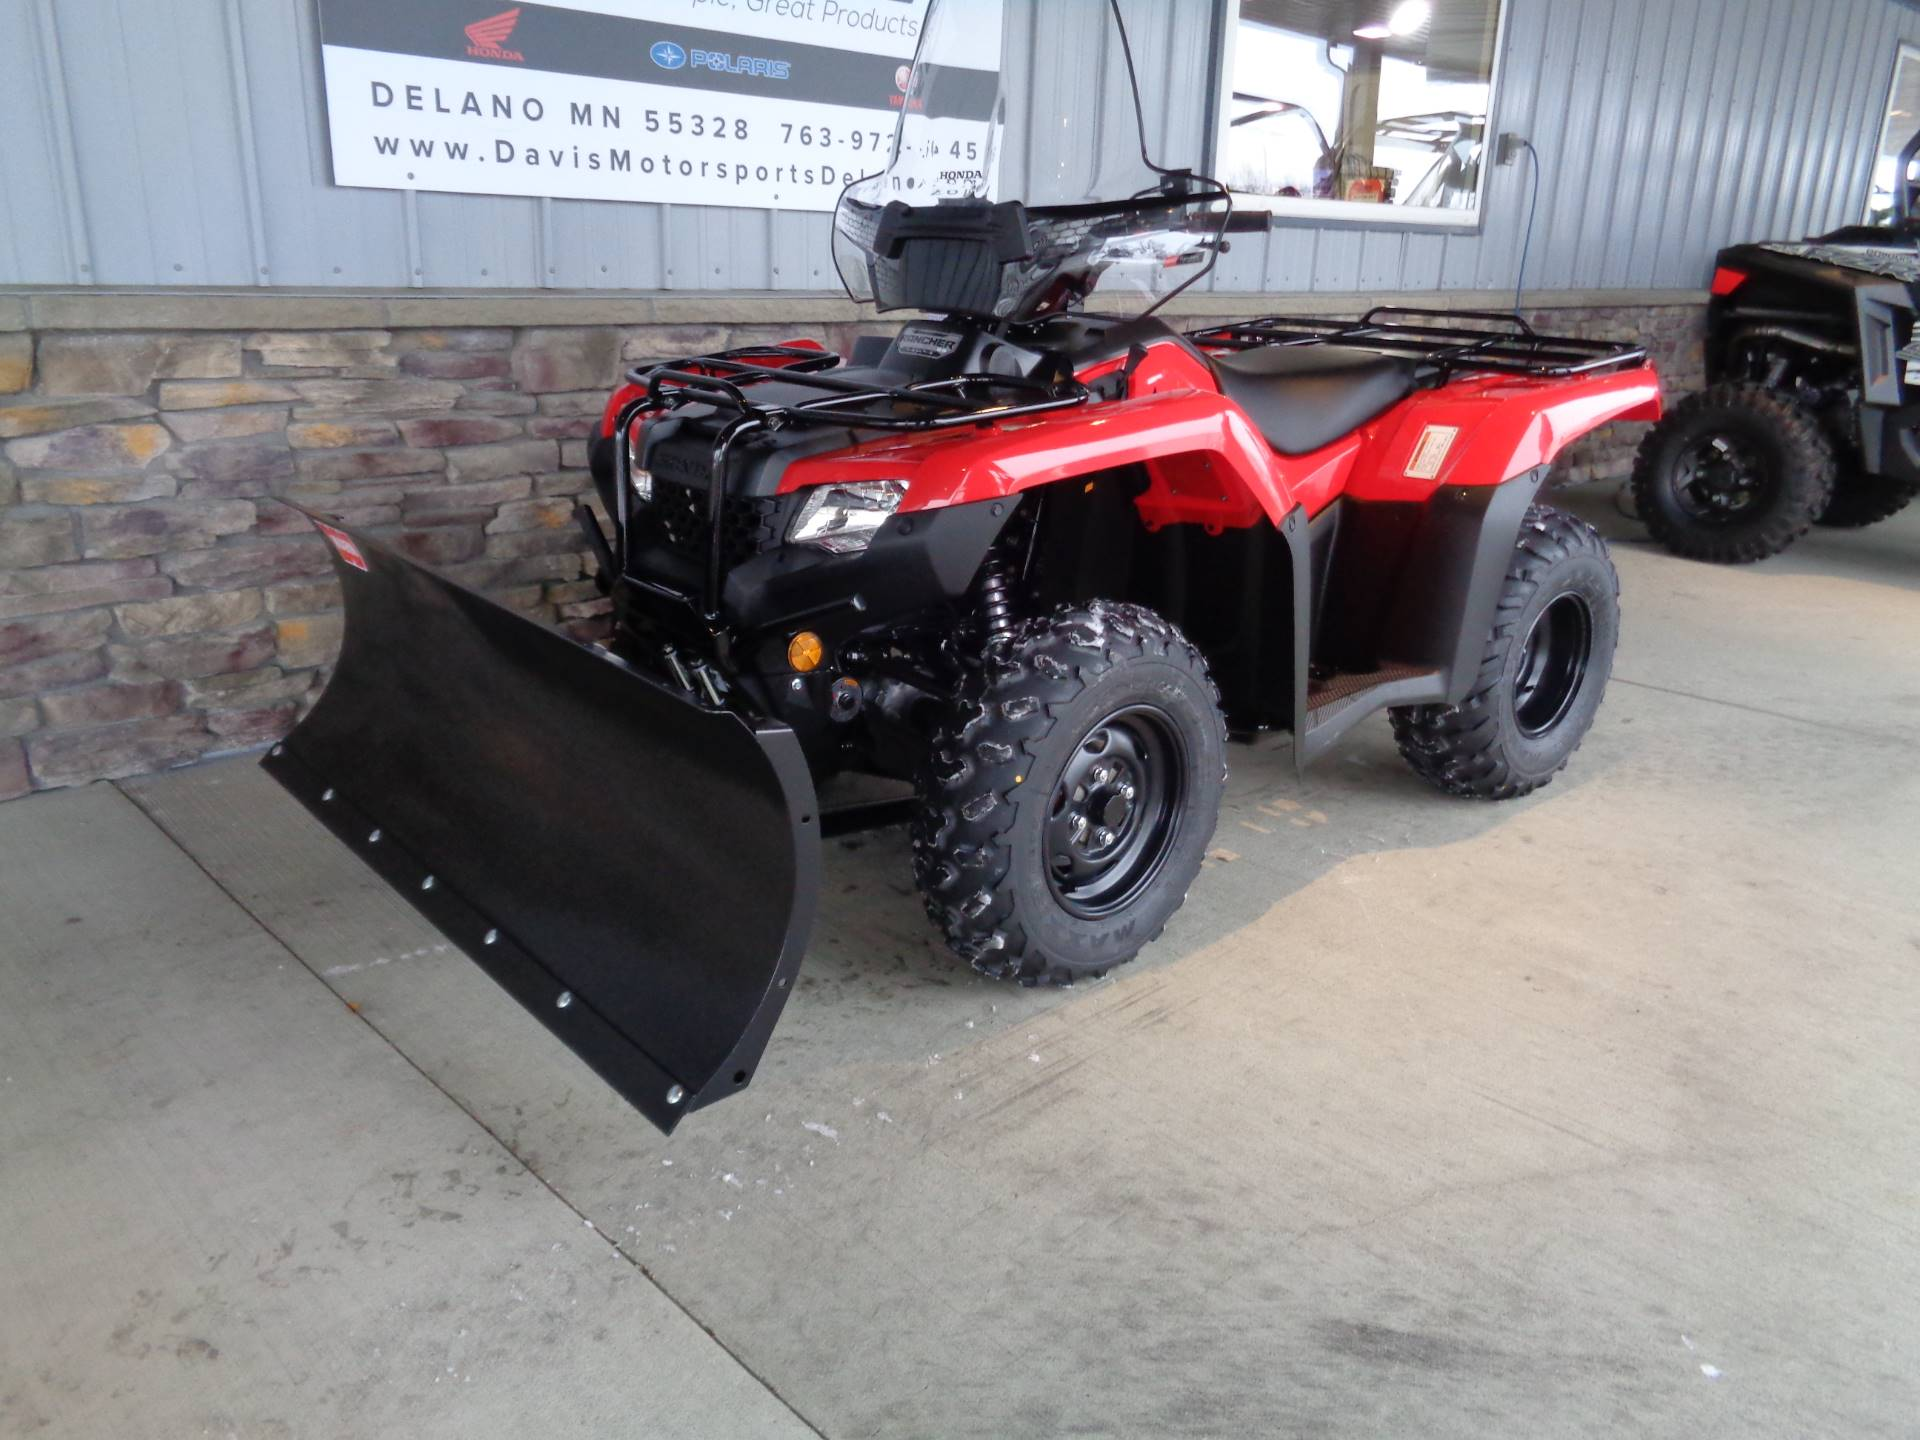 2019 Honda FourTrax Rancher 4x4 ES in Delano, Minnesota